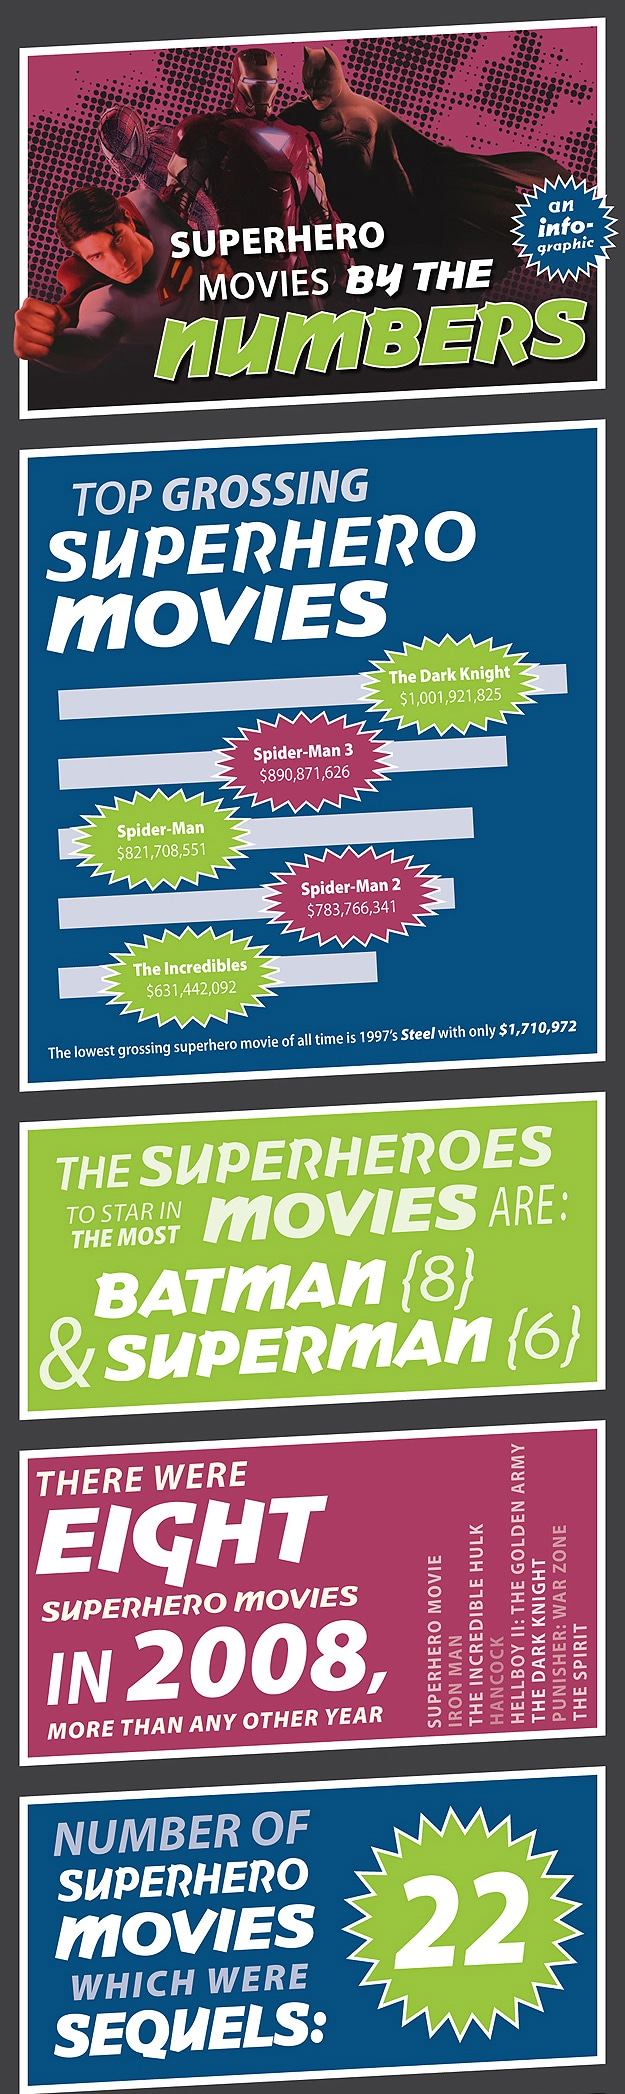 Top Grossing Superhero Movies (Some May Surprise You)